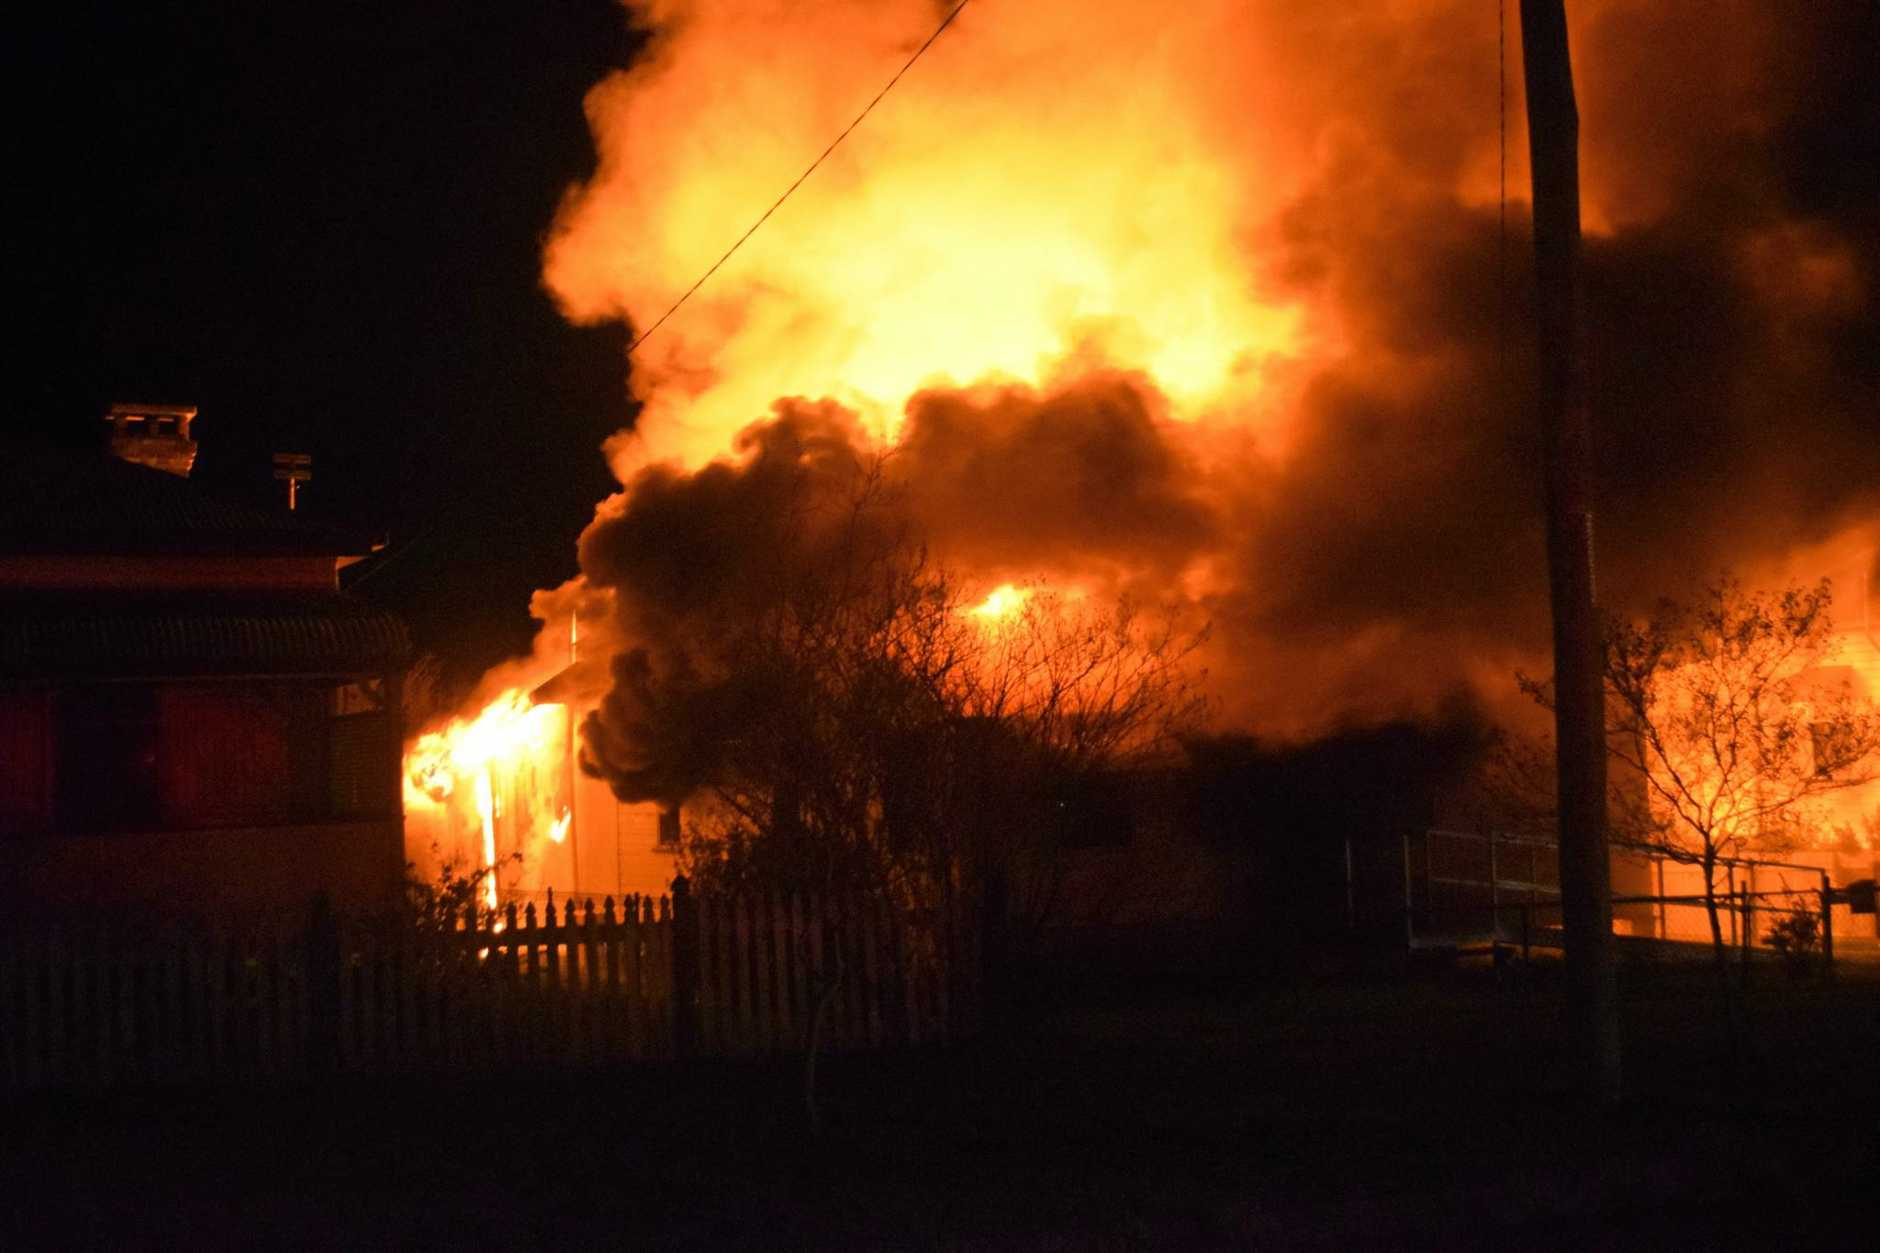 HOUSE ENGULFED: A man has died in a devastating Warwick house fire on Saturday night.